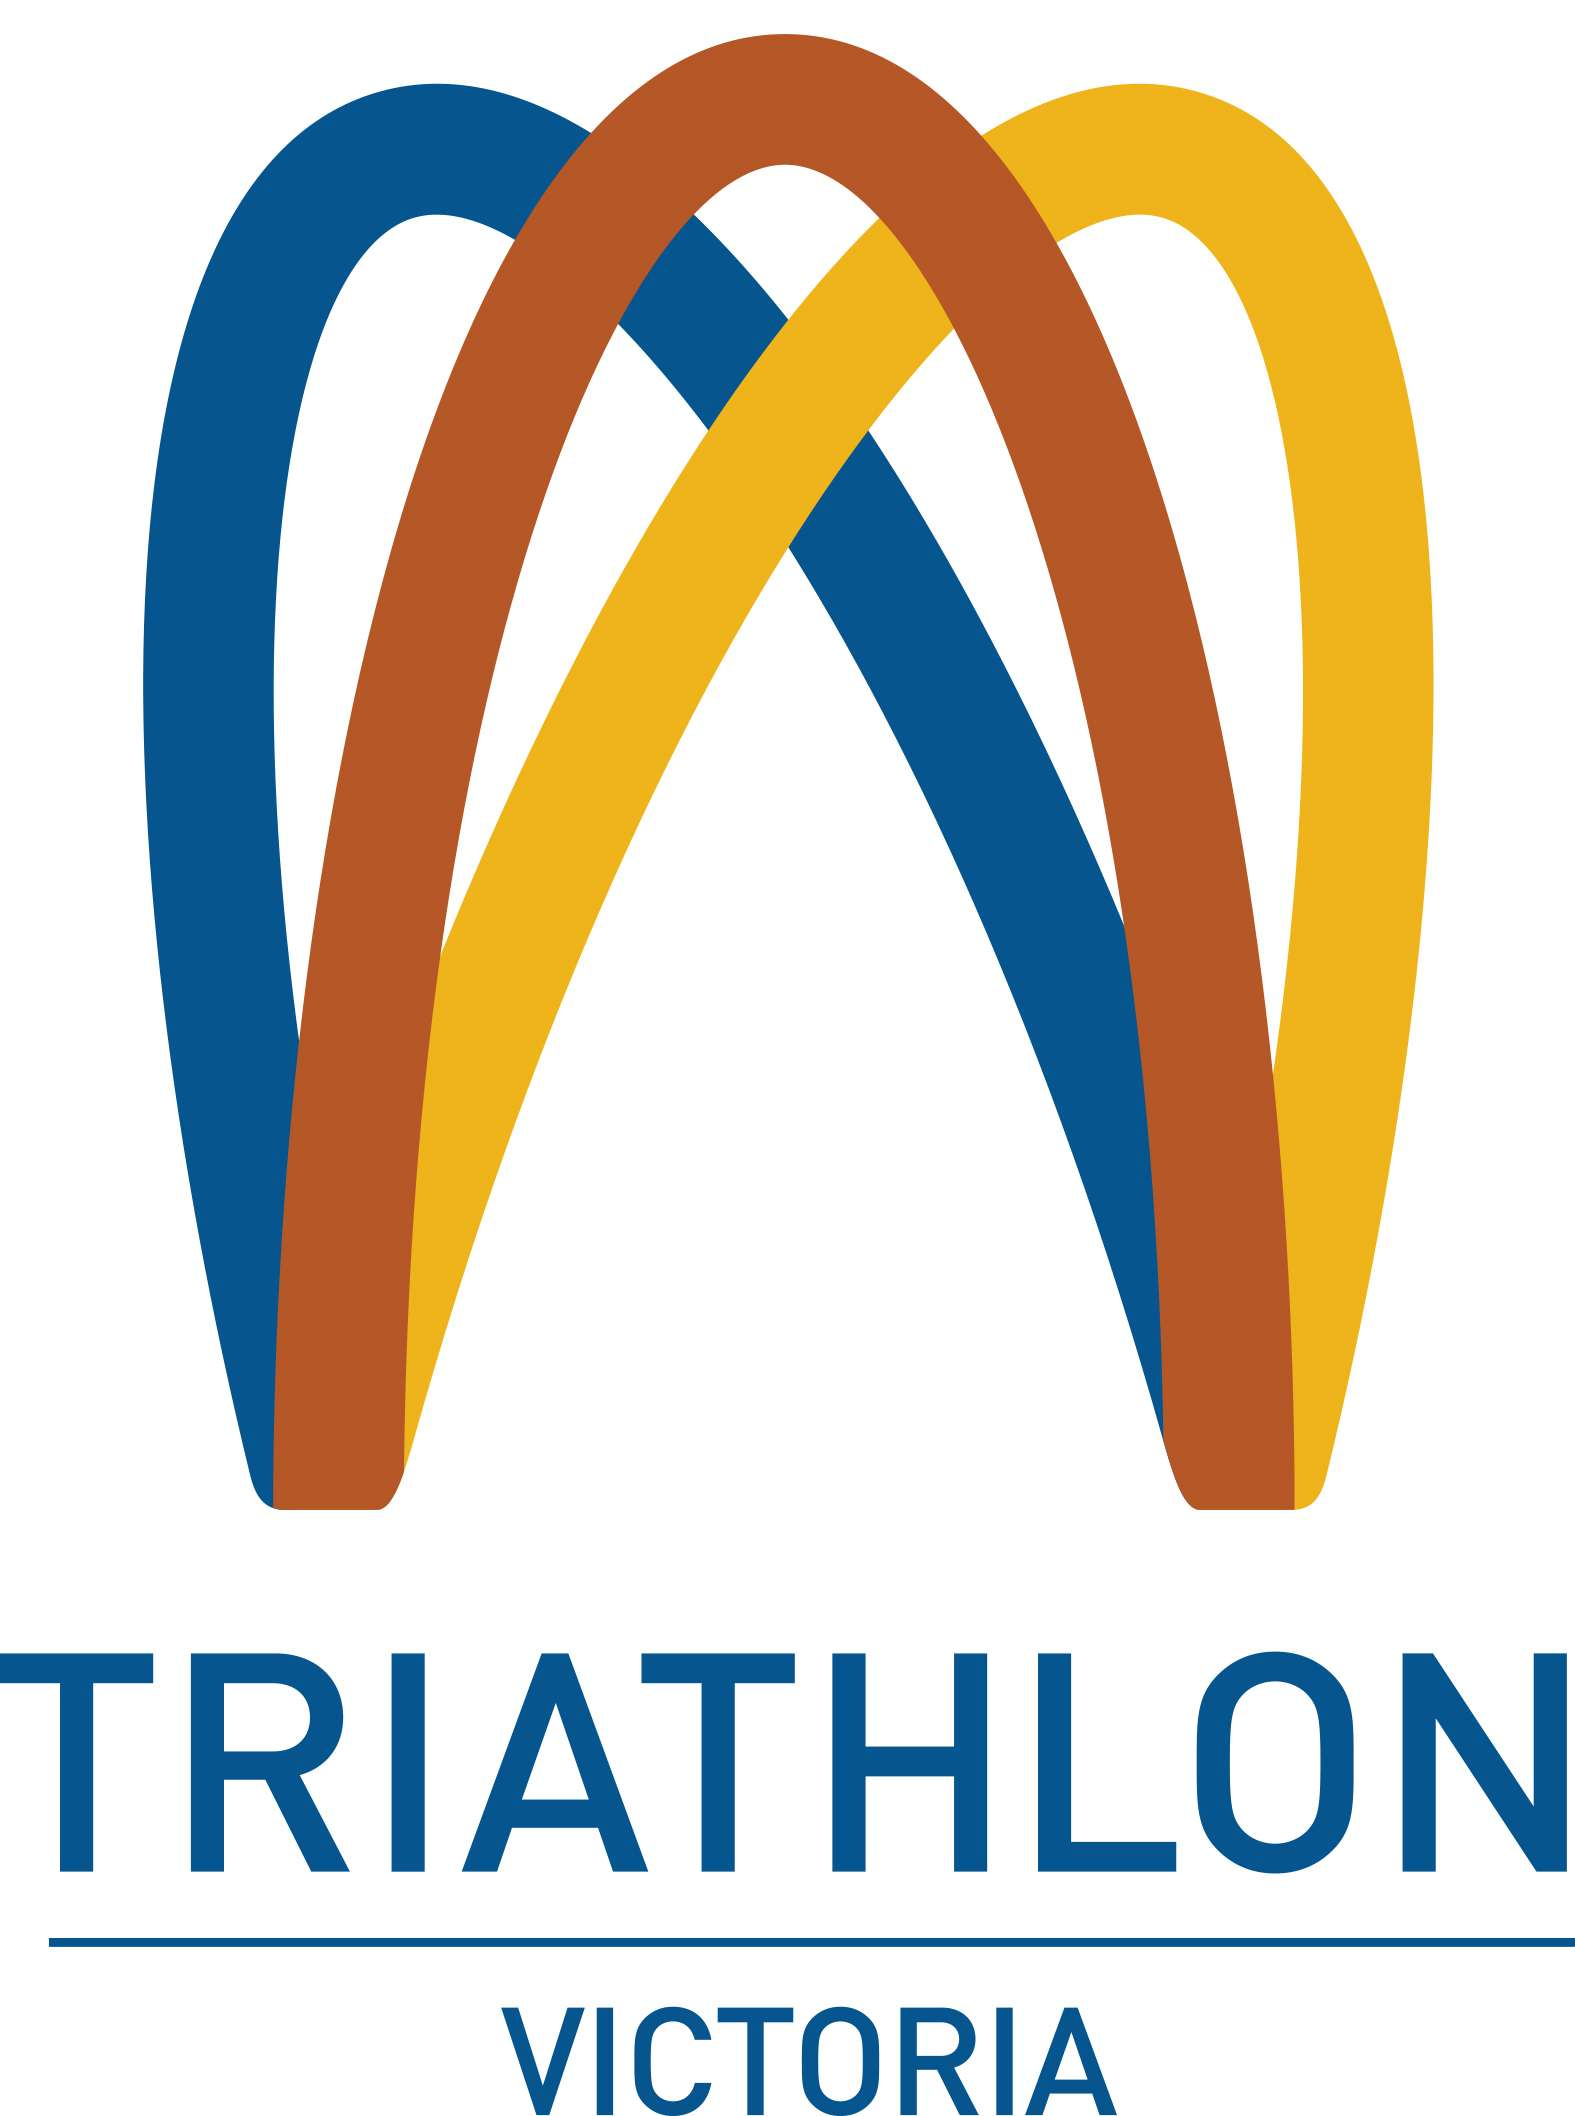 TriathlonVIC logo H